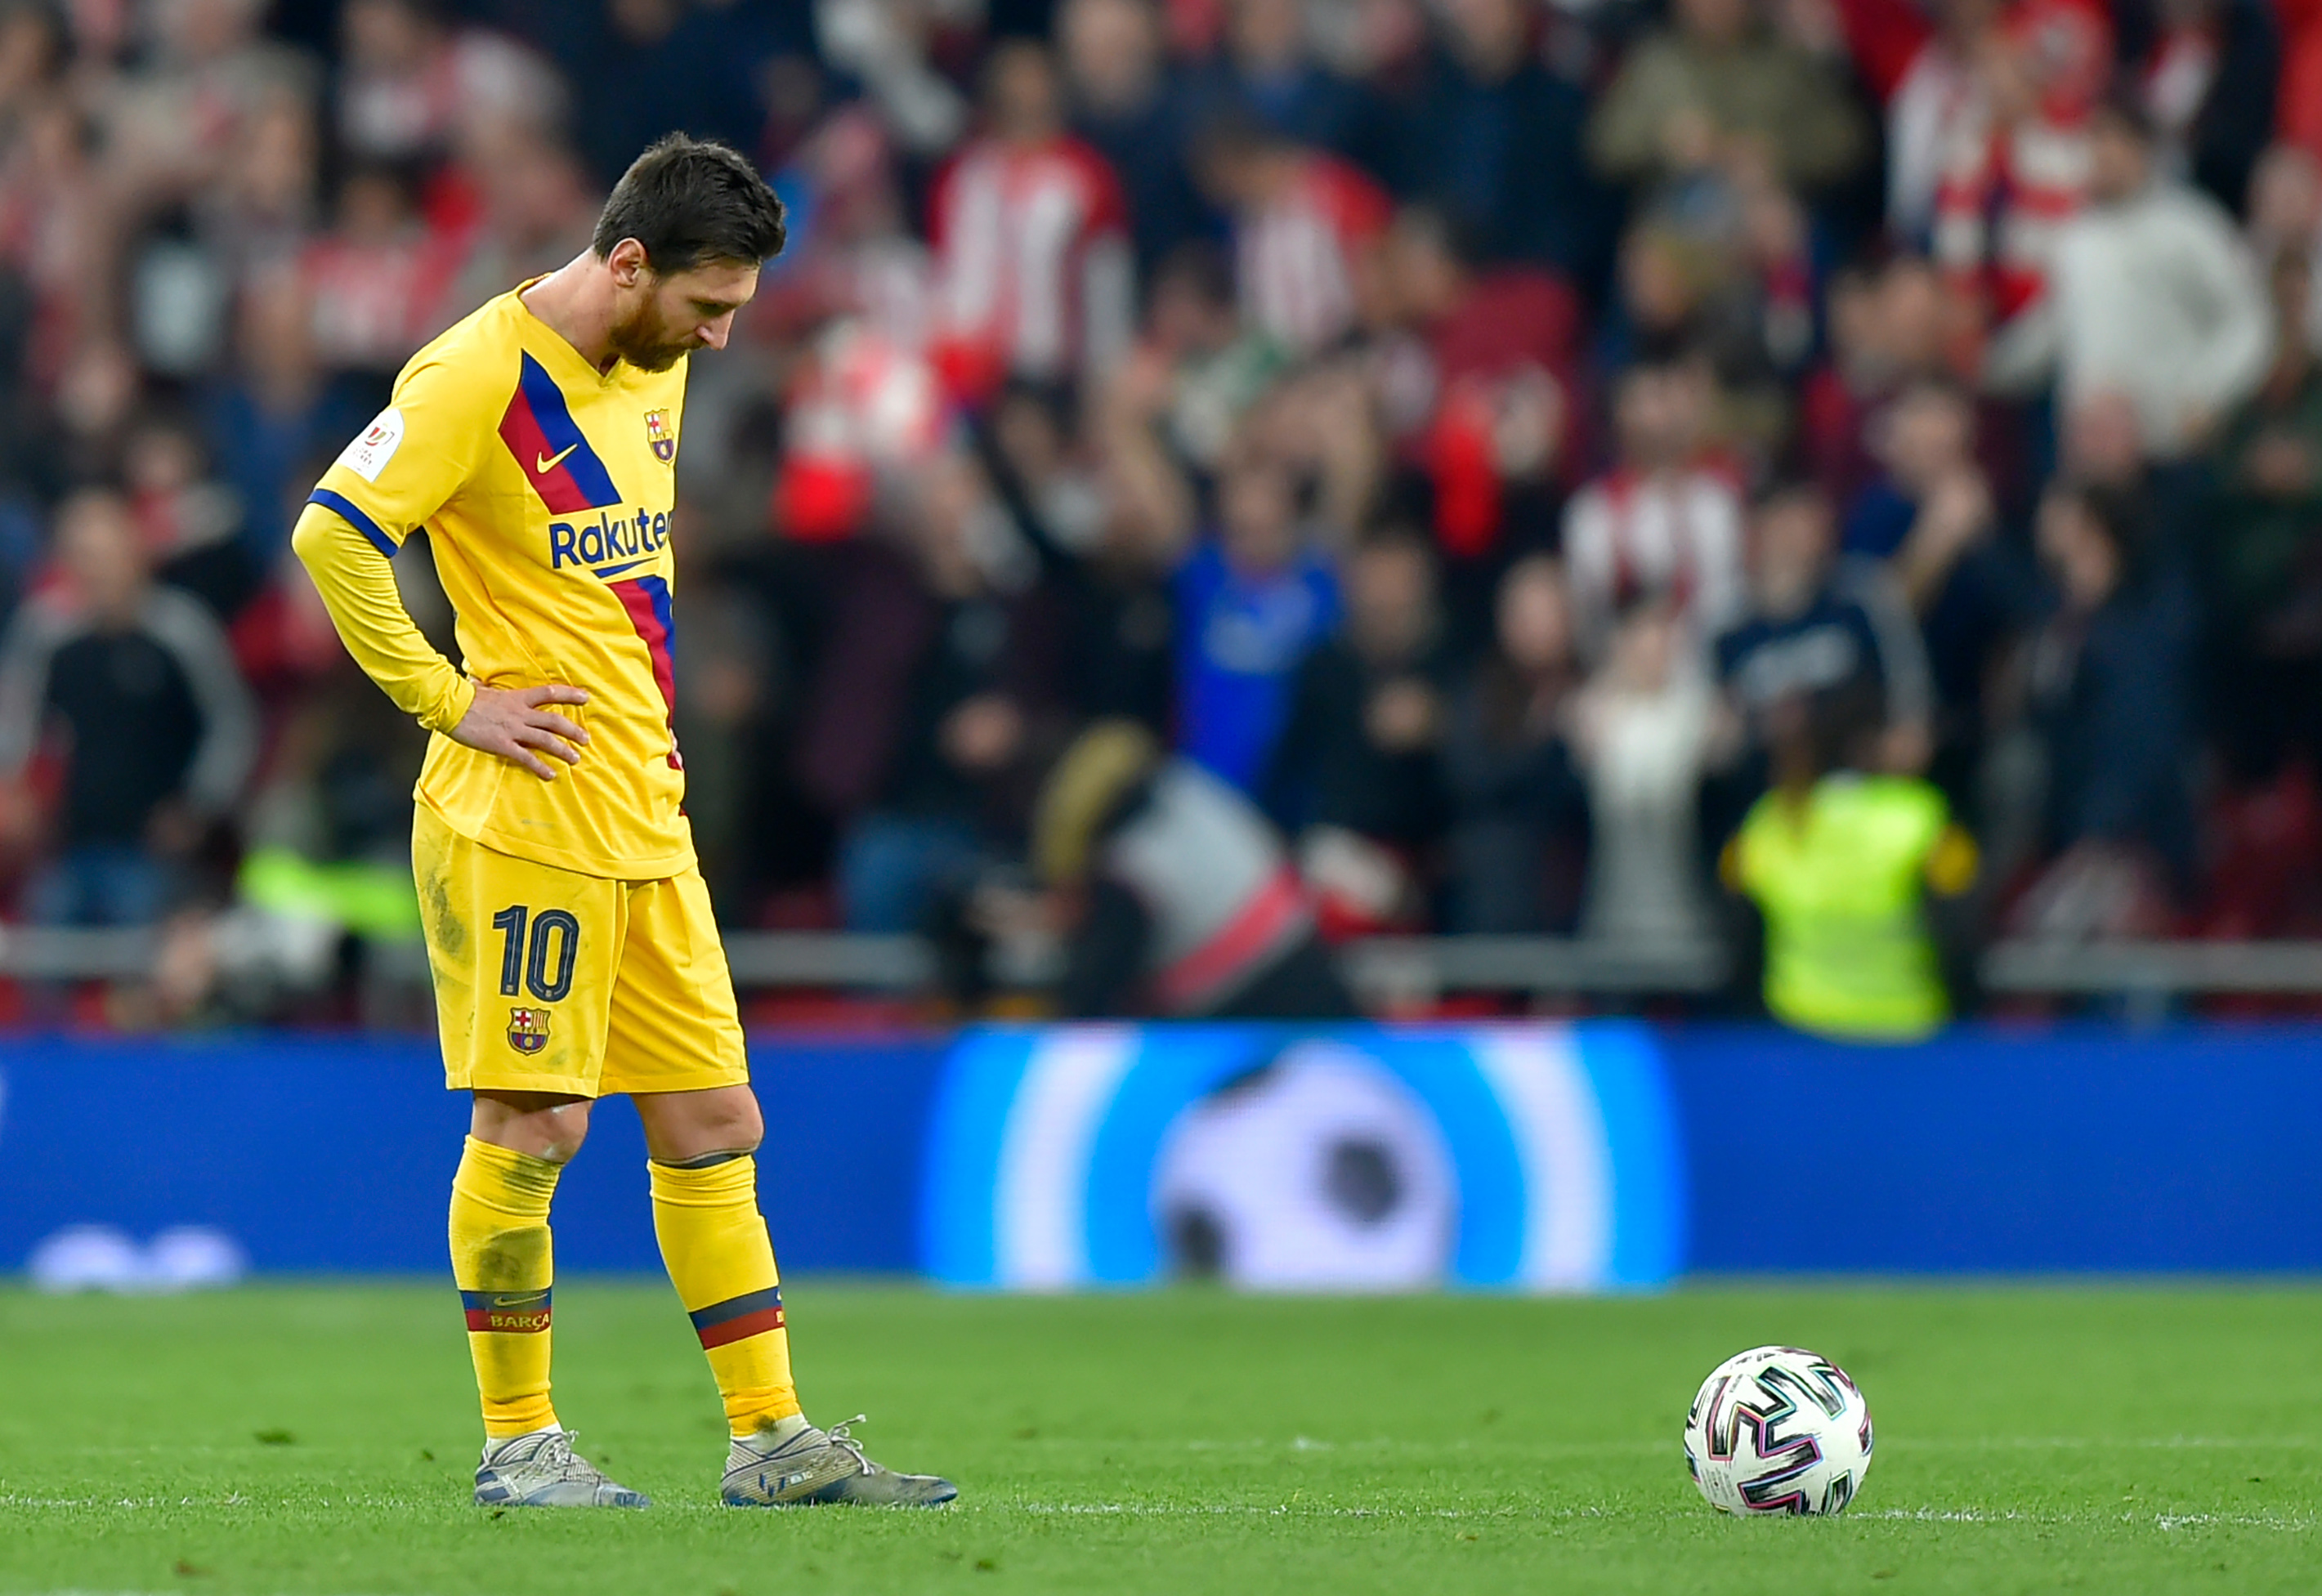 Lionel Messi has often been left on his own by Barcelona lately. (Photo by Ander Gillenea/AFP via Getty Images)